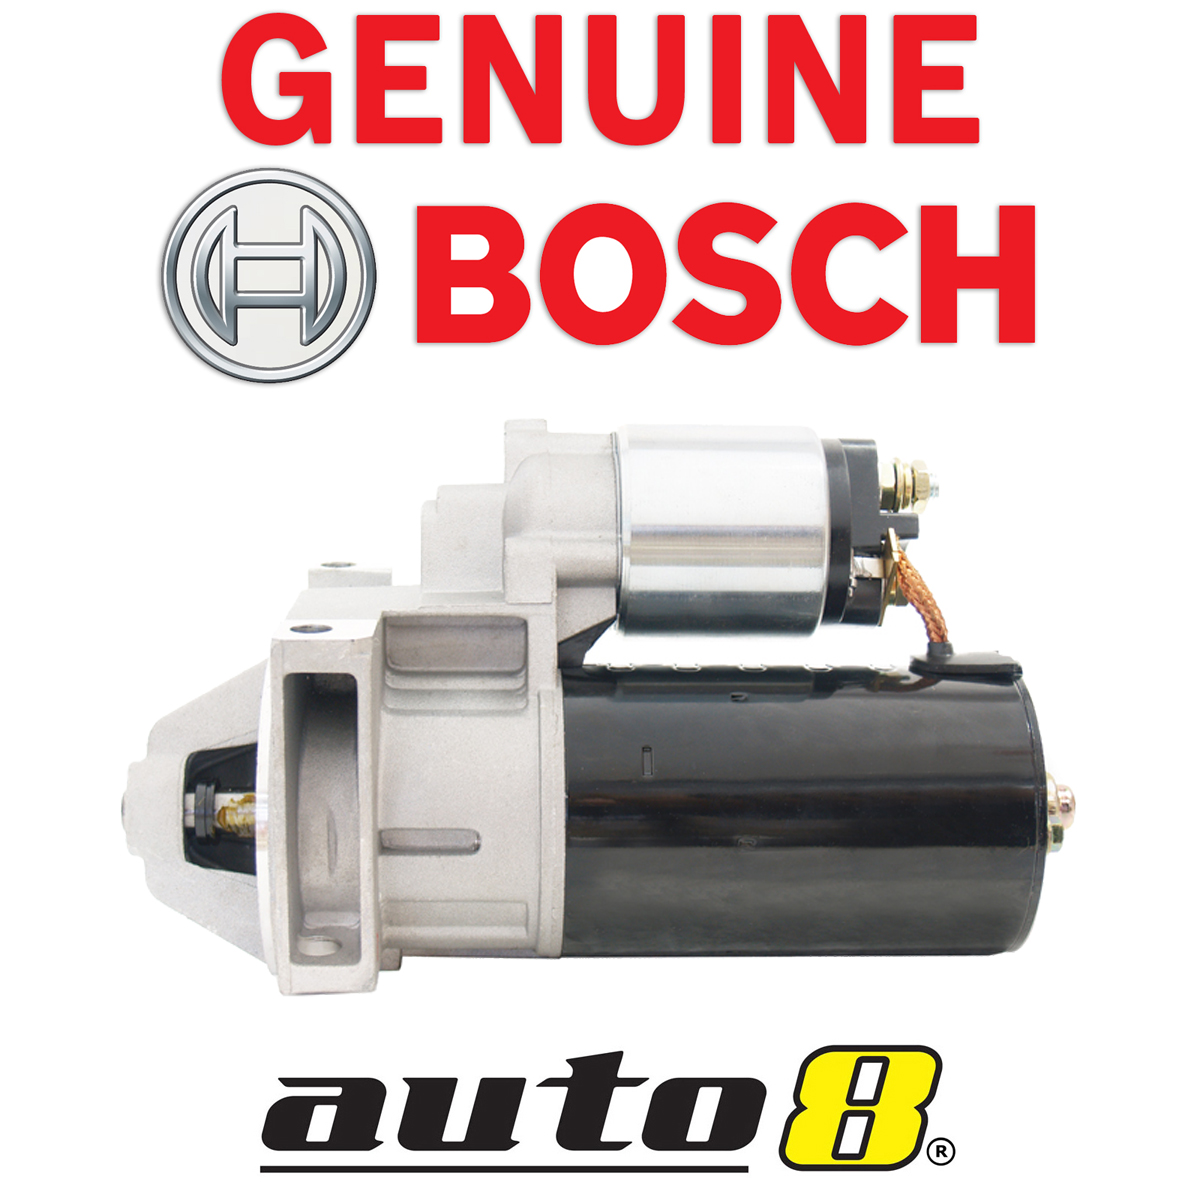 Bosch Starter Motor to fit Holden Maloo VS 5.0L Petrol LB9 (304) 1995 - 2000